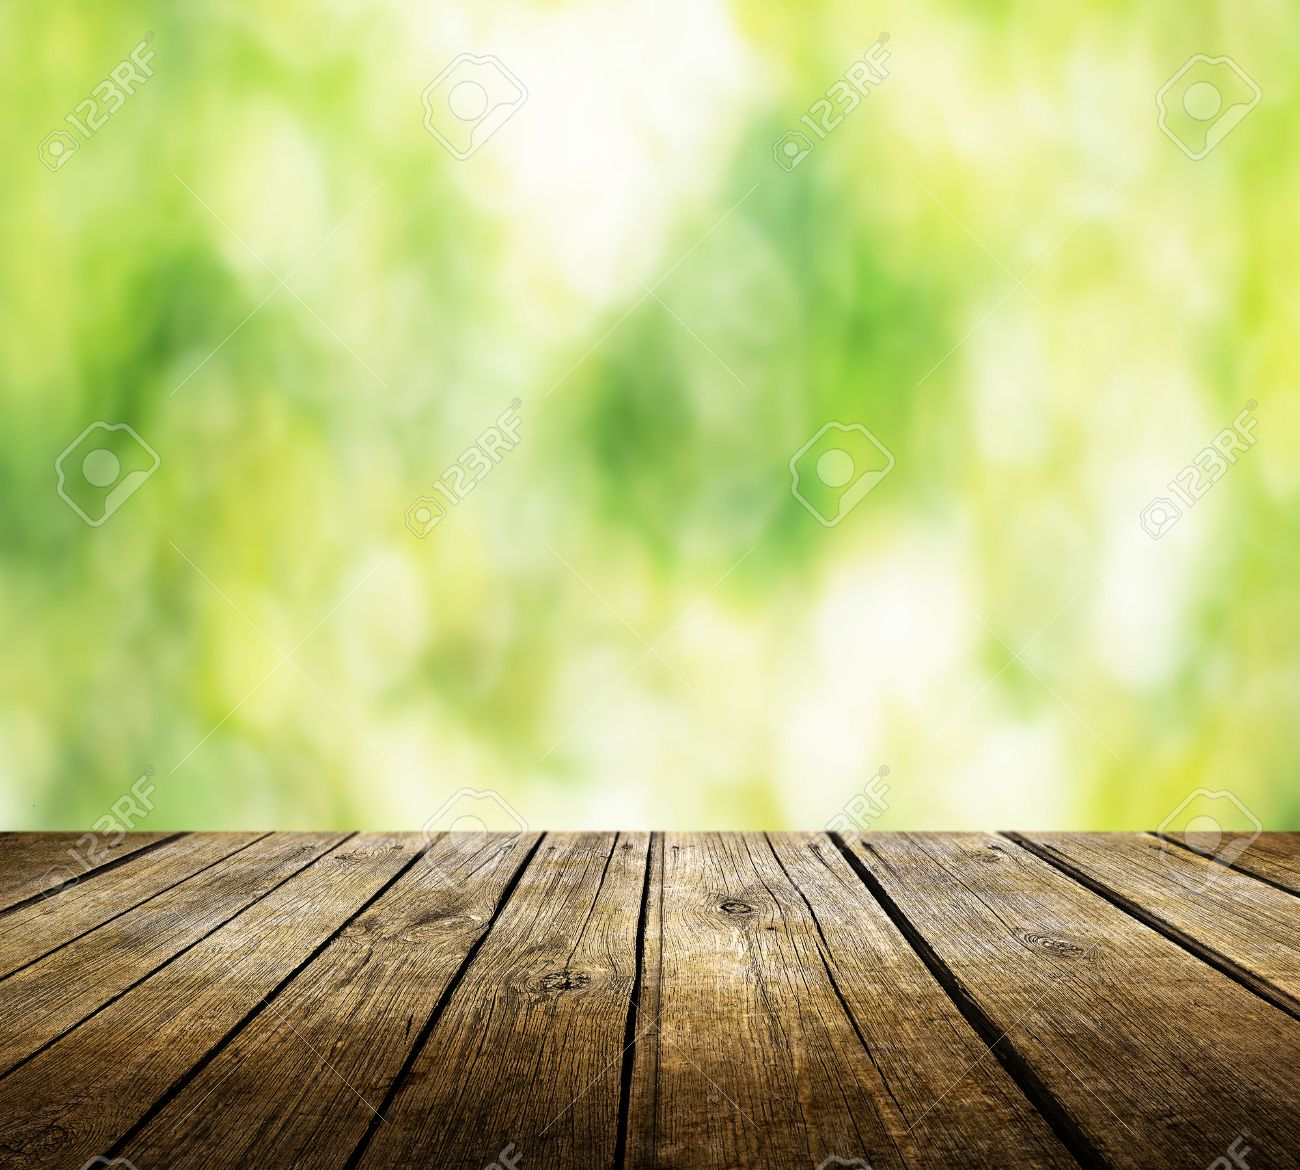 Wood table background hd - Wood Table Perspective Empty Table For Product Display Montages Stock Photo